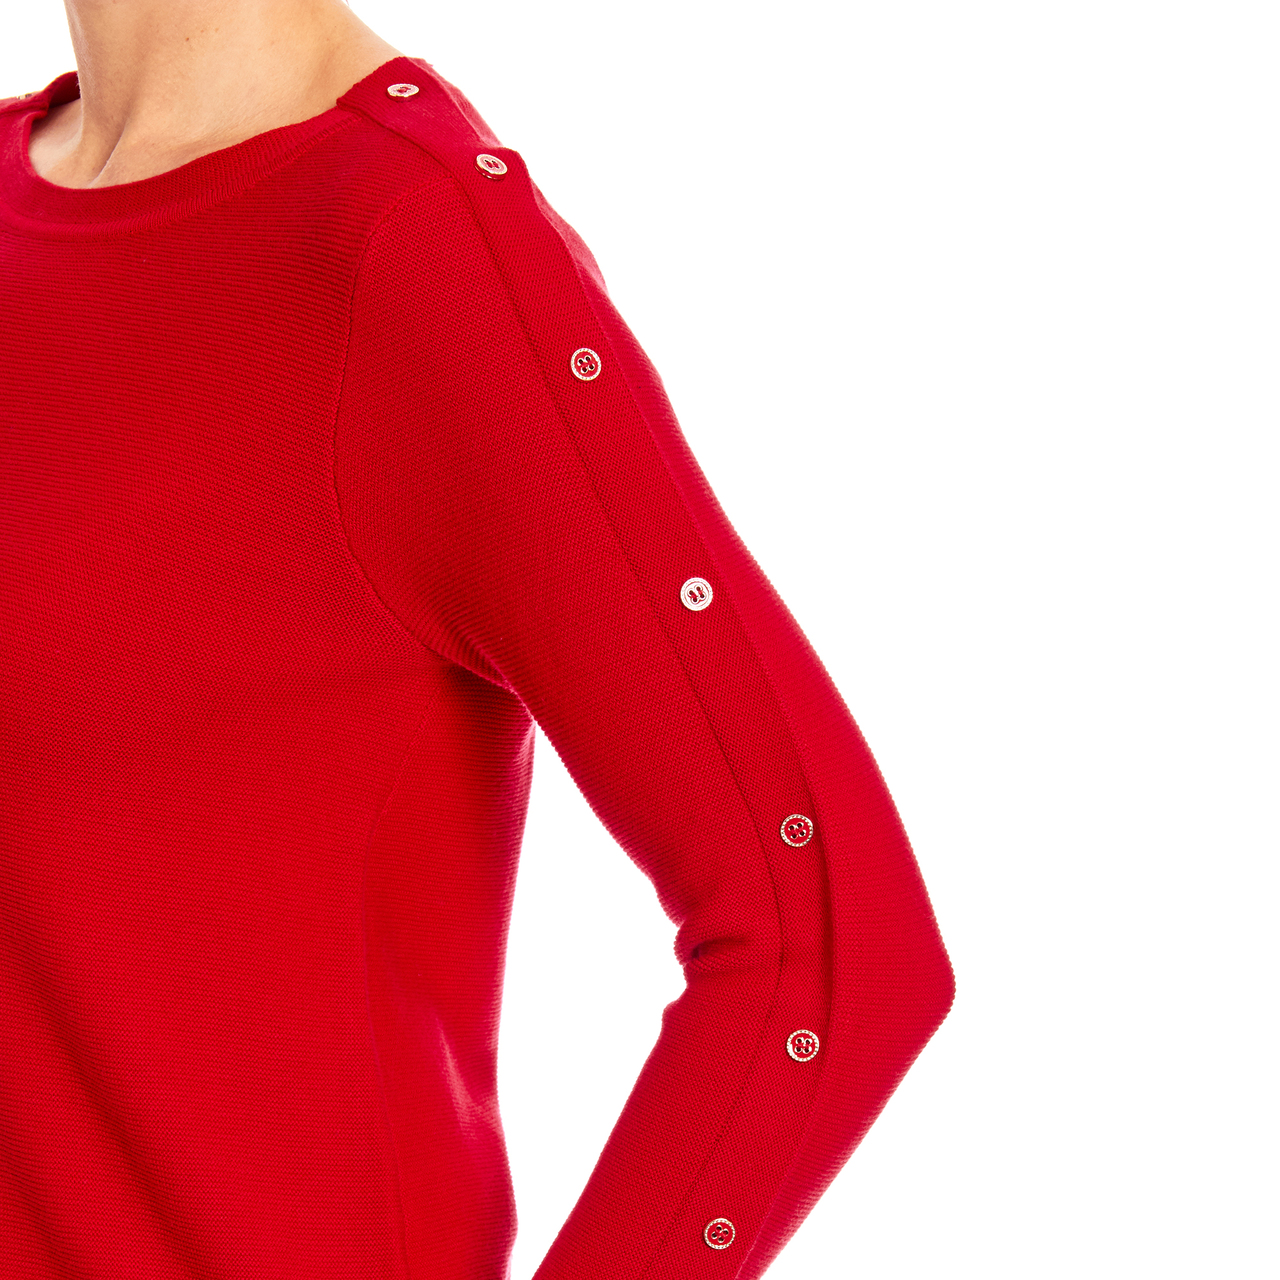 3/4 Sleeve Novelty Button Sleeve Crew Neck Textured Sweater in Red